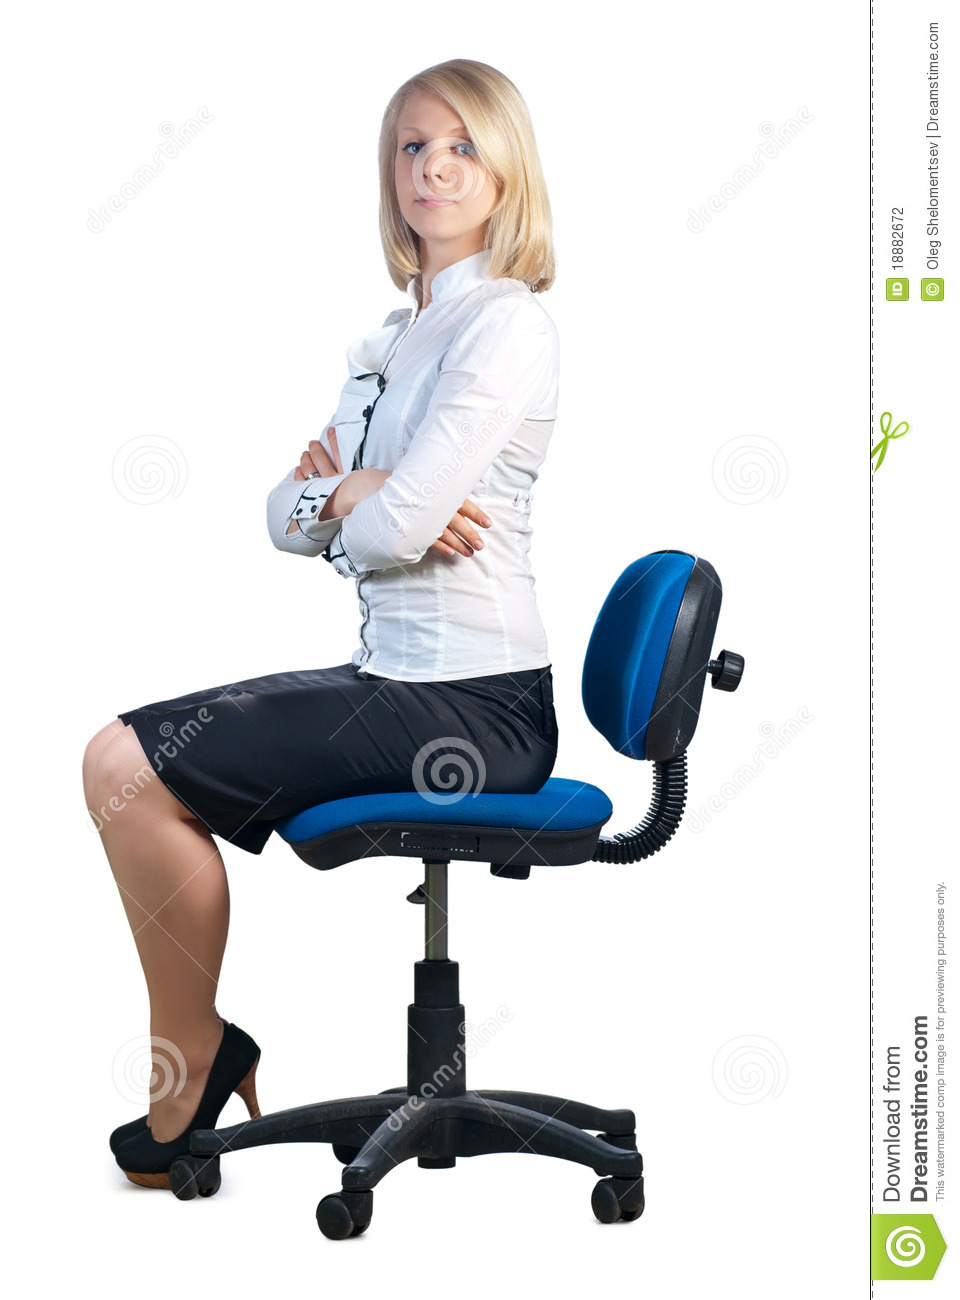 ... businesswoman sitting in office chair. Isolated on white background